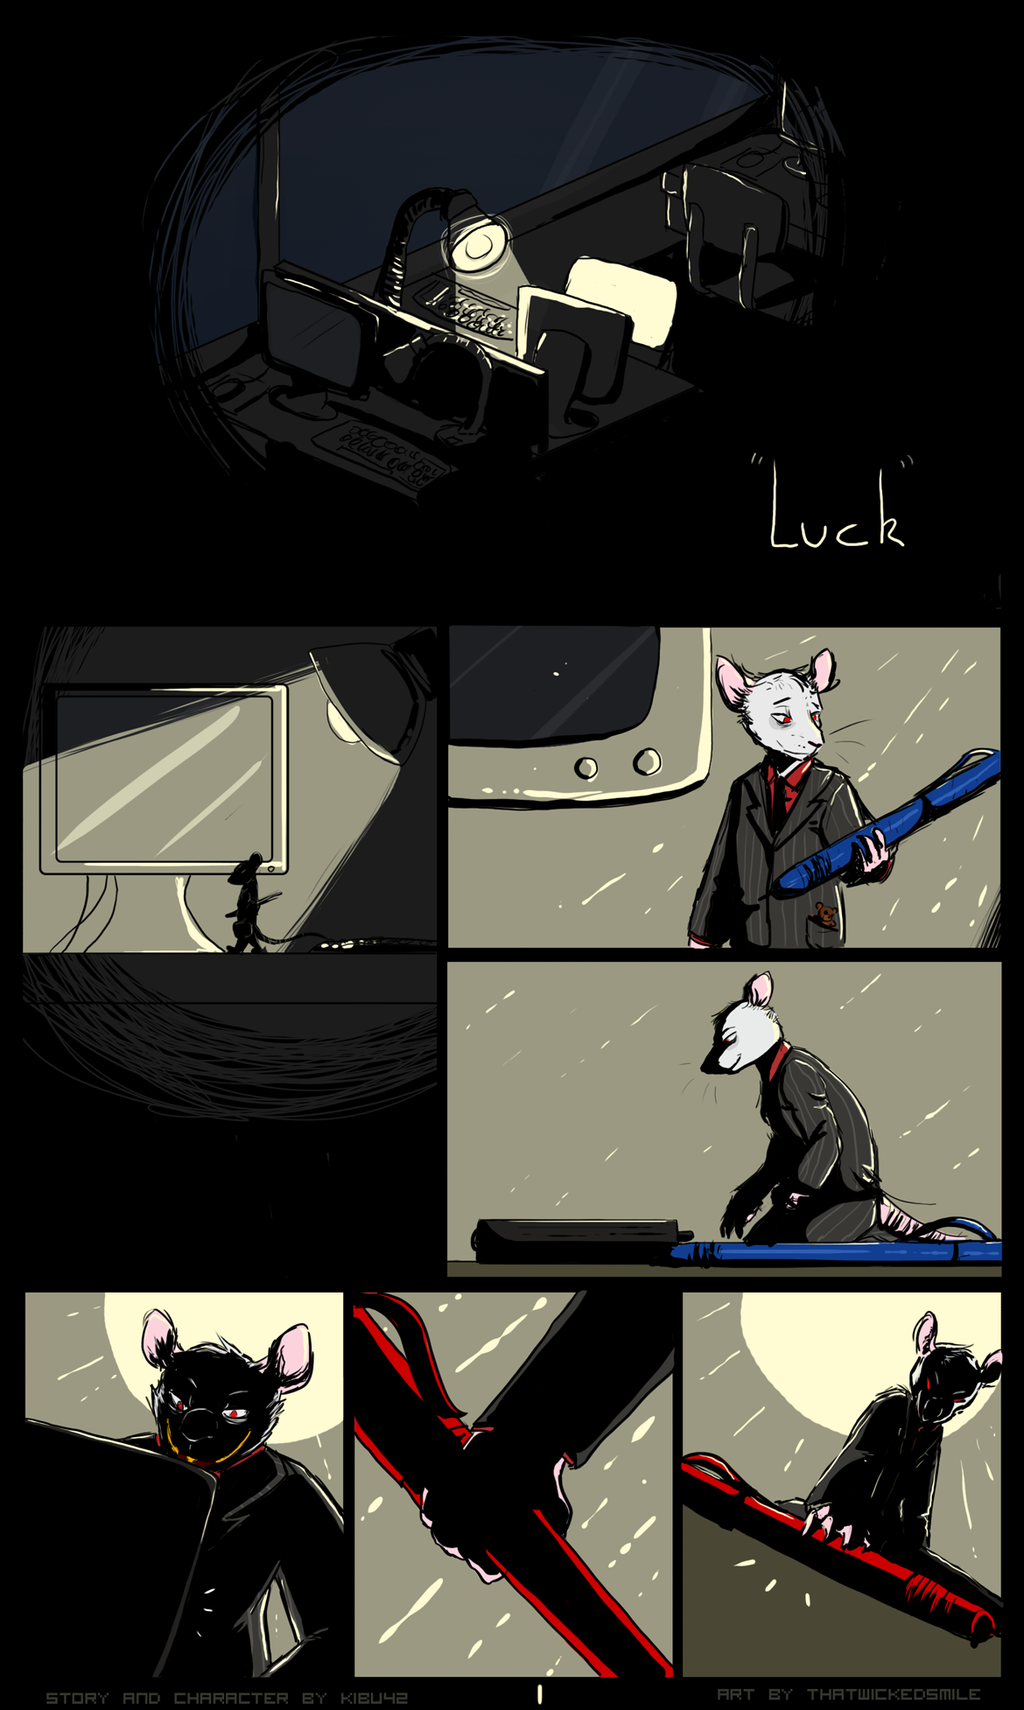 """Luck"" - Page 1"